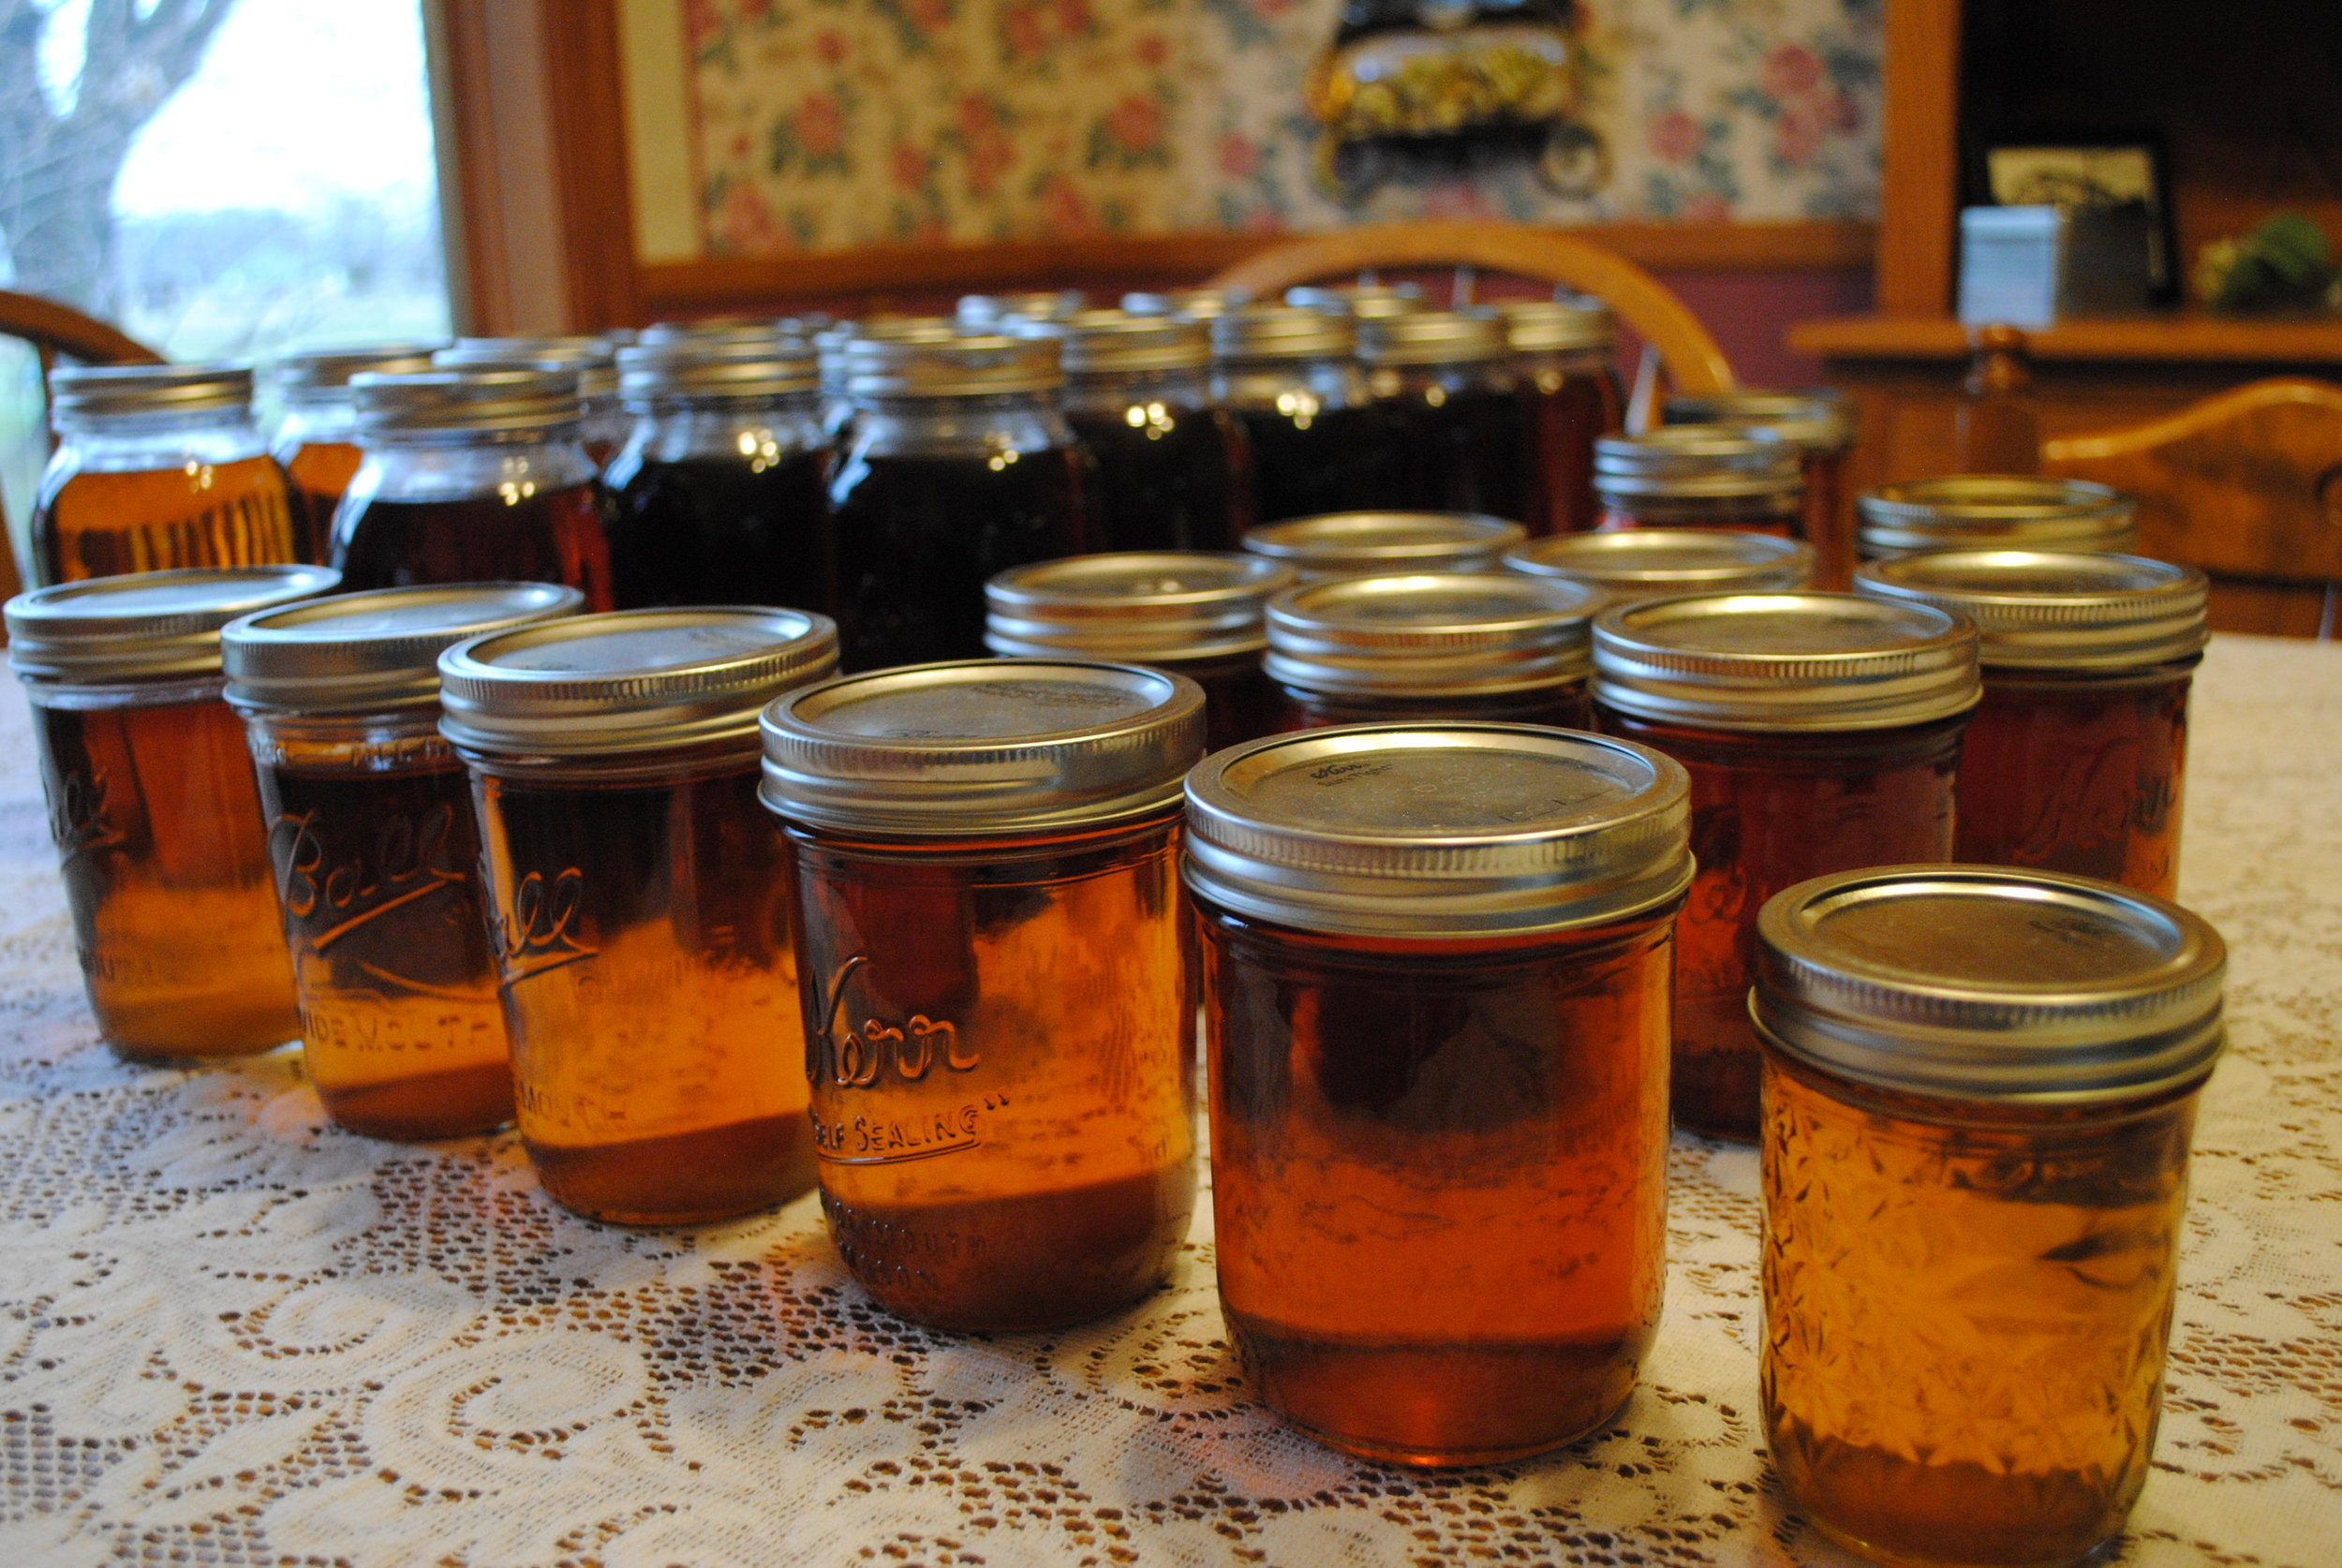 Jars of new maple syrup produced by Susan and Leslie Bergquist thanks to maple trees in their yard and those of their neighbors in Granite Falls. Tom Cherveny / Forum News Service